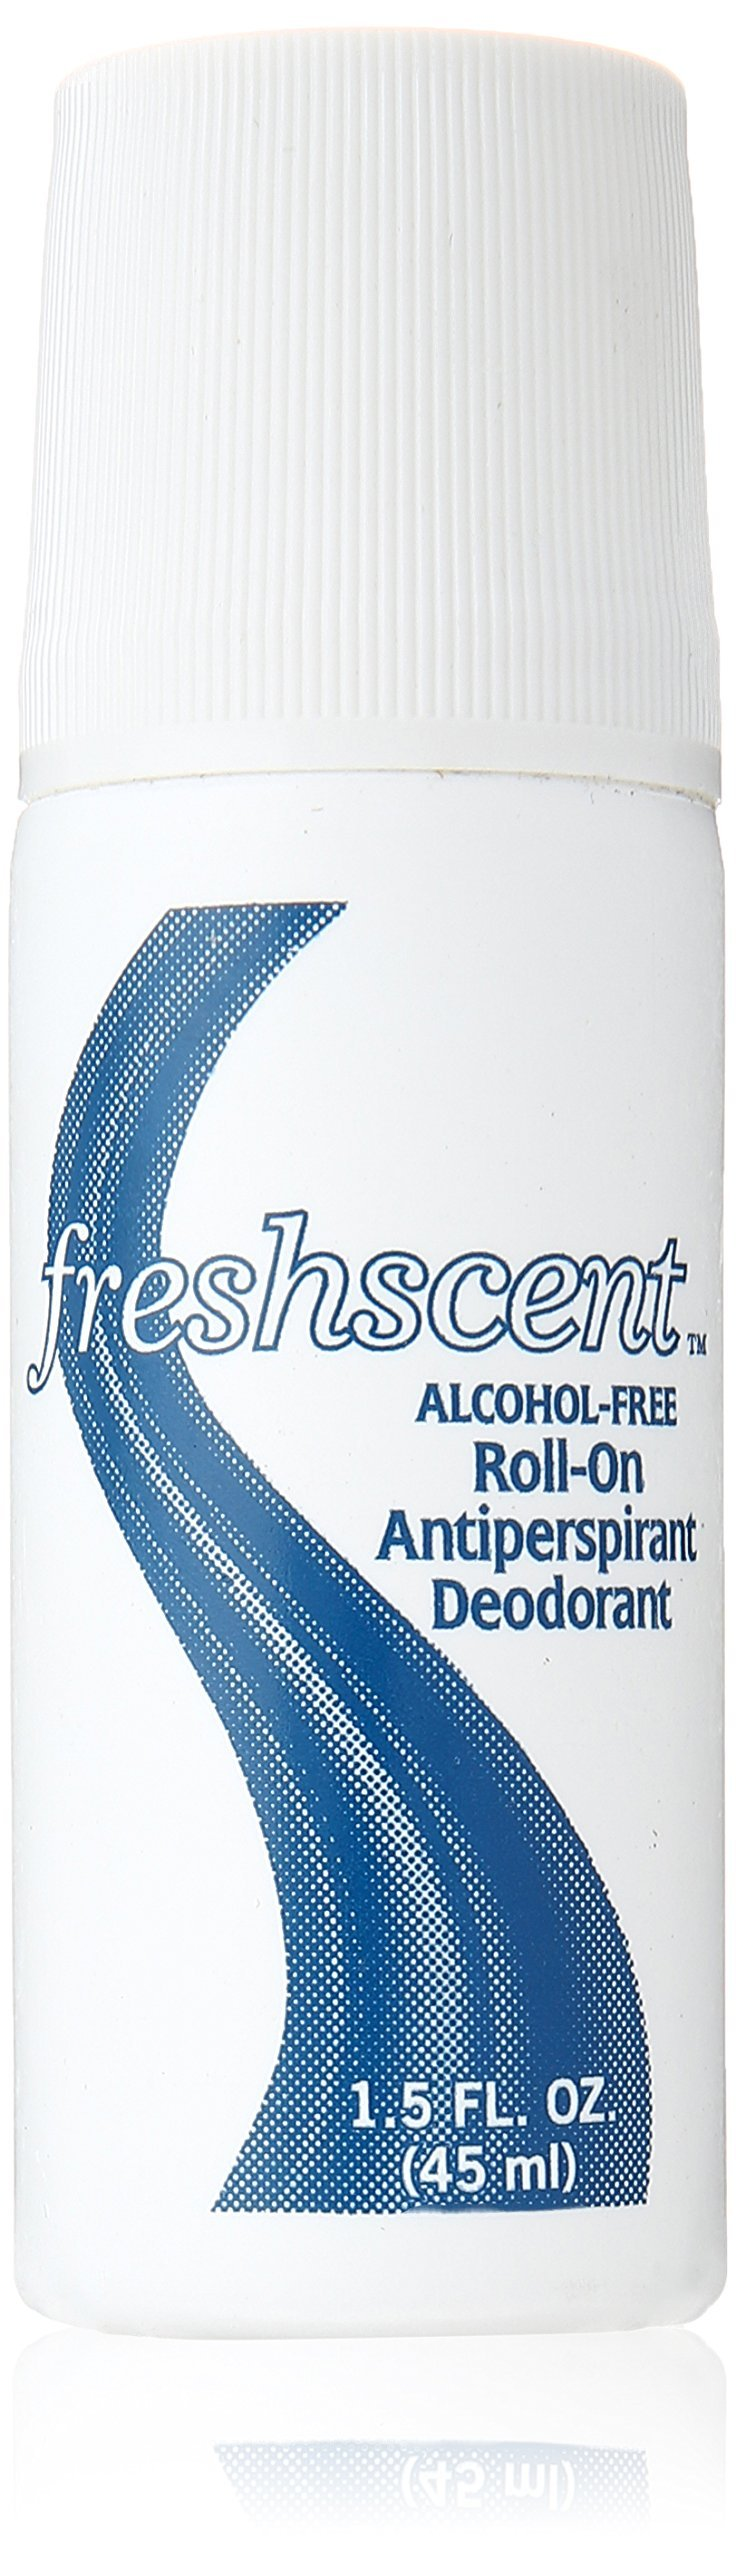 Freshscent Roll-On Deodorant Alcohol Free, 1.5 oz., Pack of 96